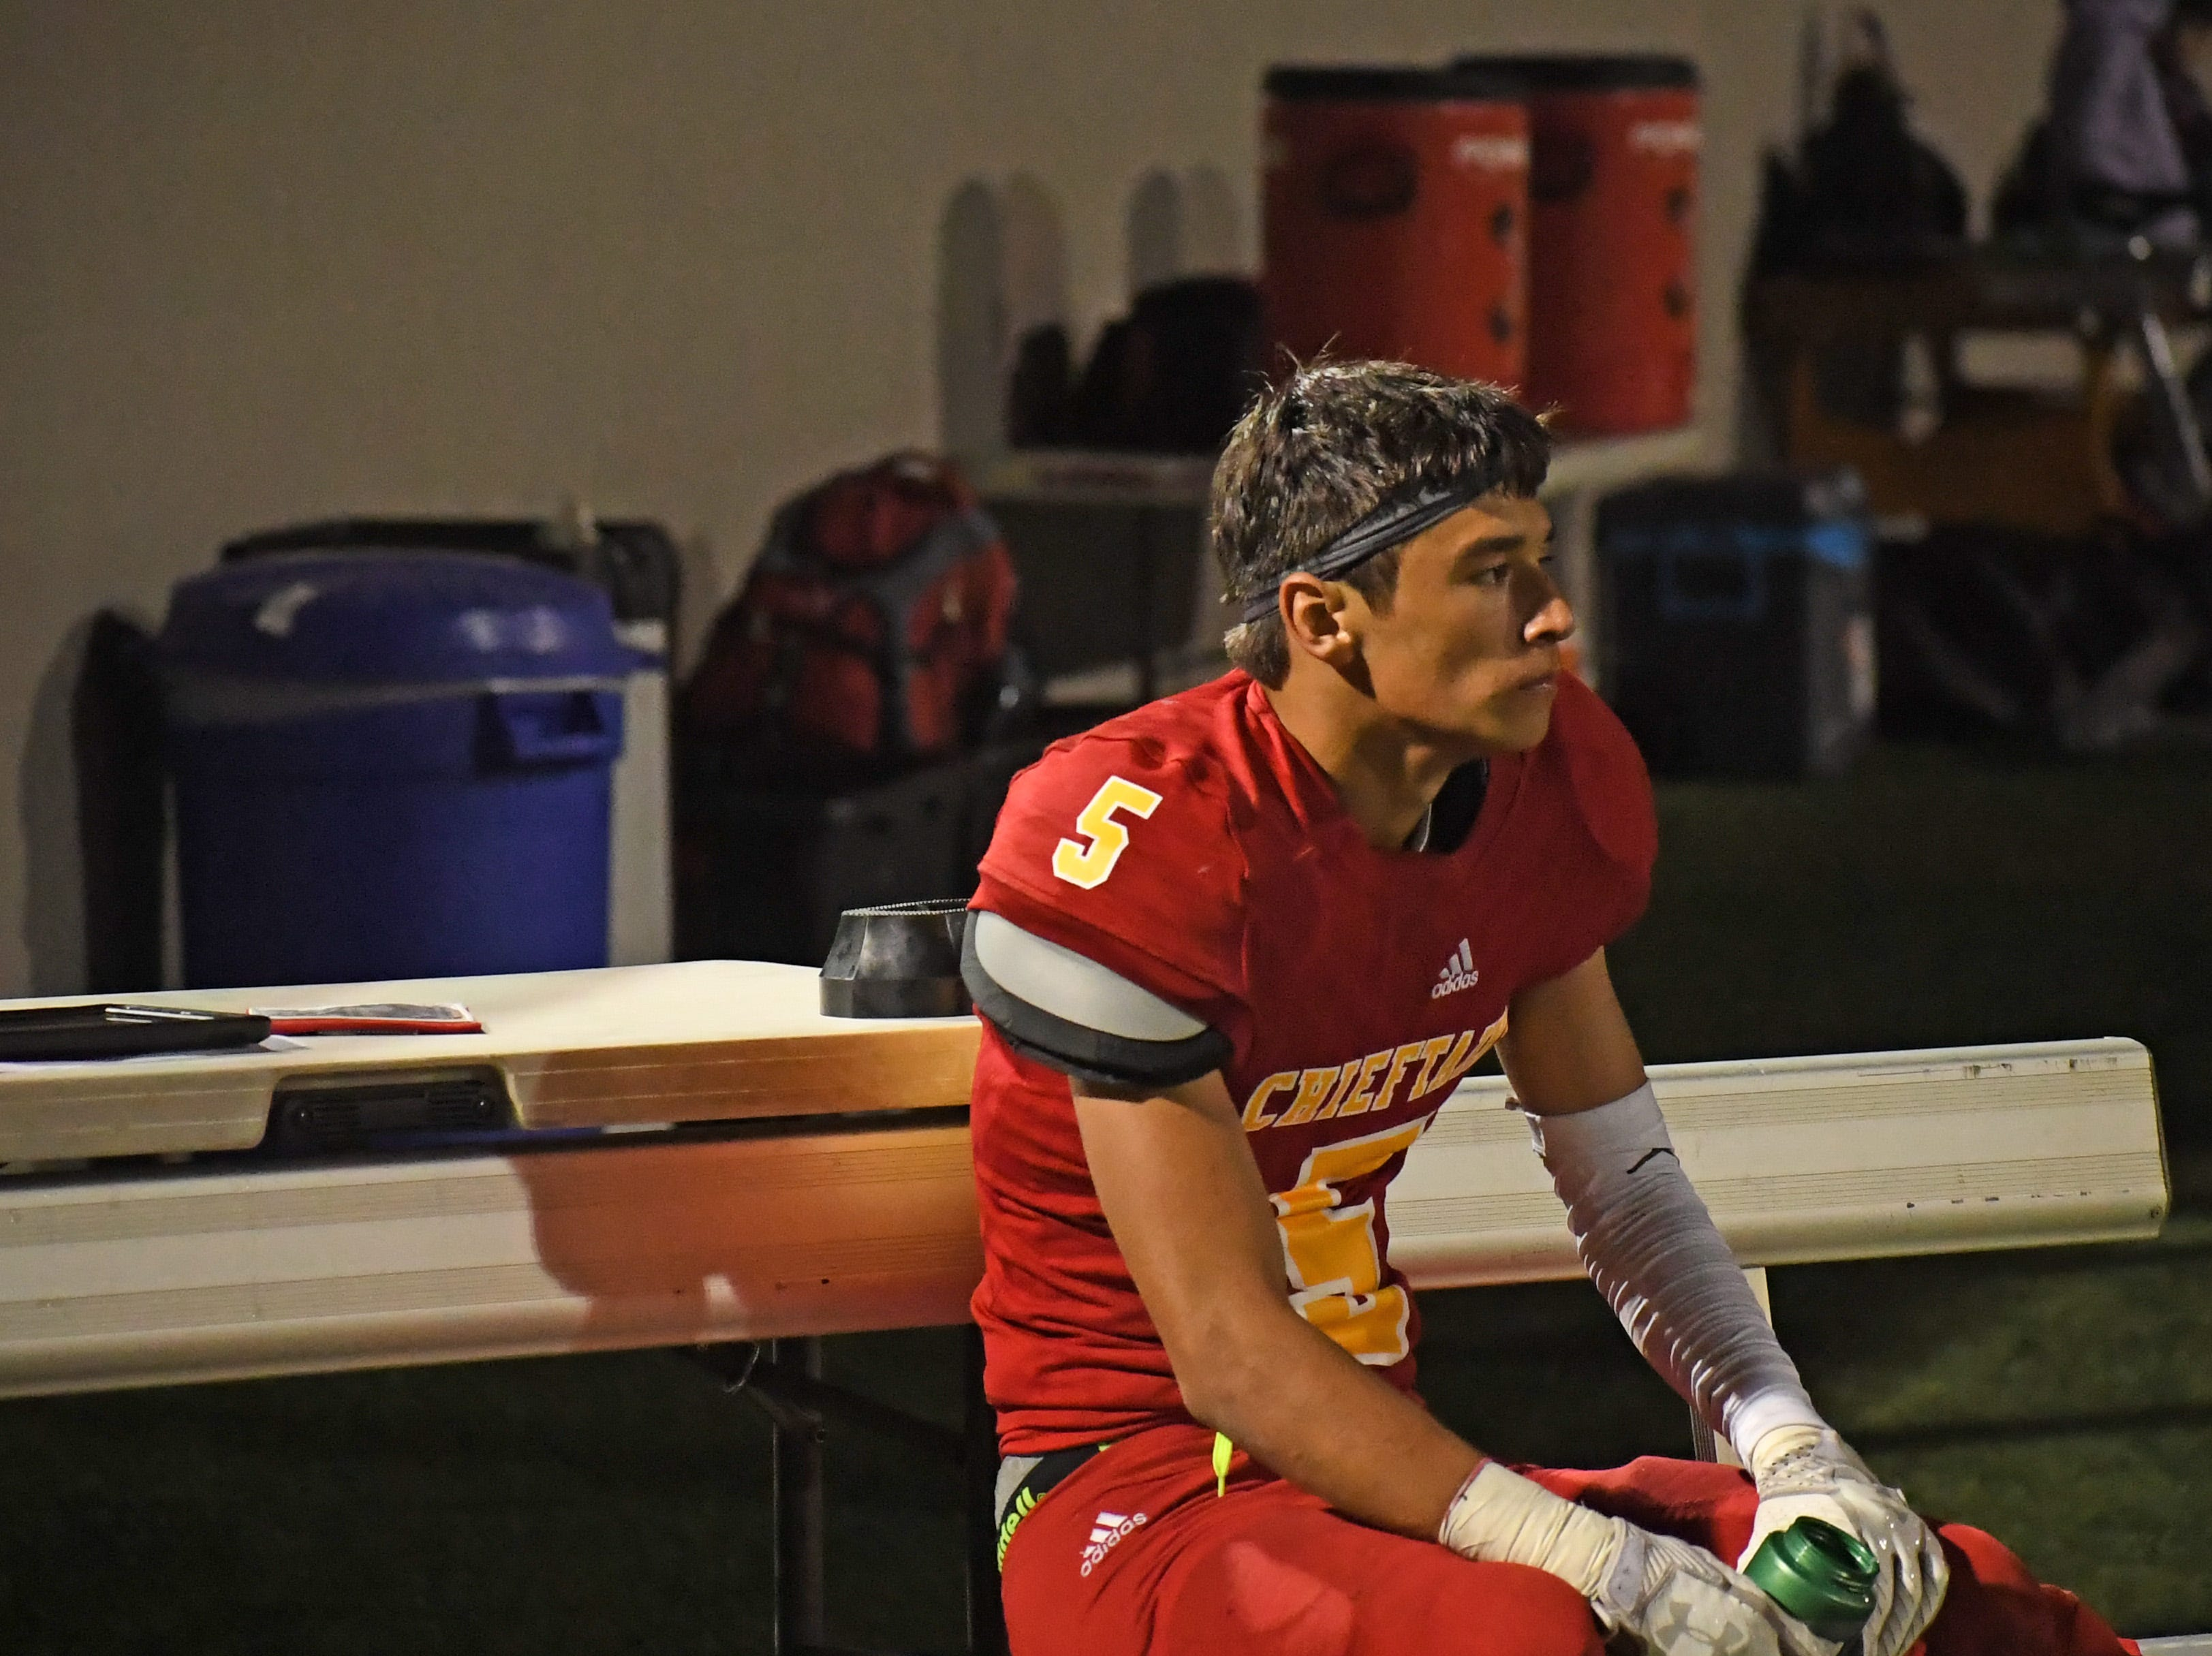 Palma senior Matt Morales (5) rests on the bench after he and the Palma defense forced a three and out.